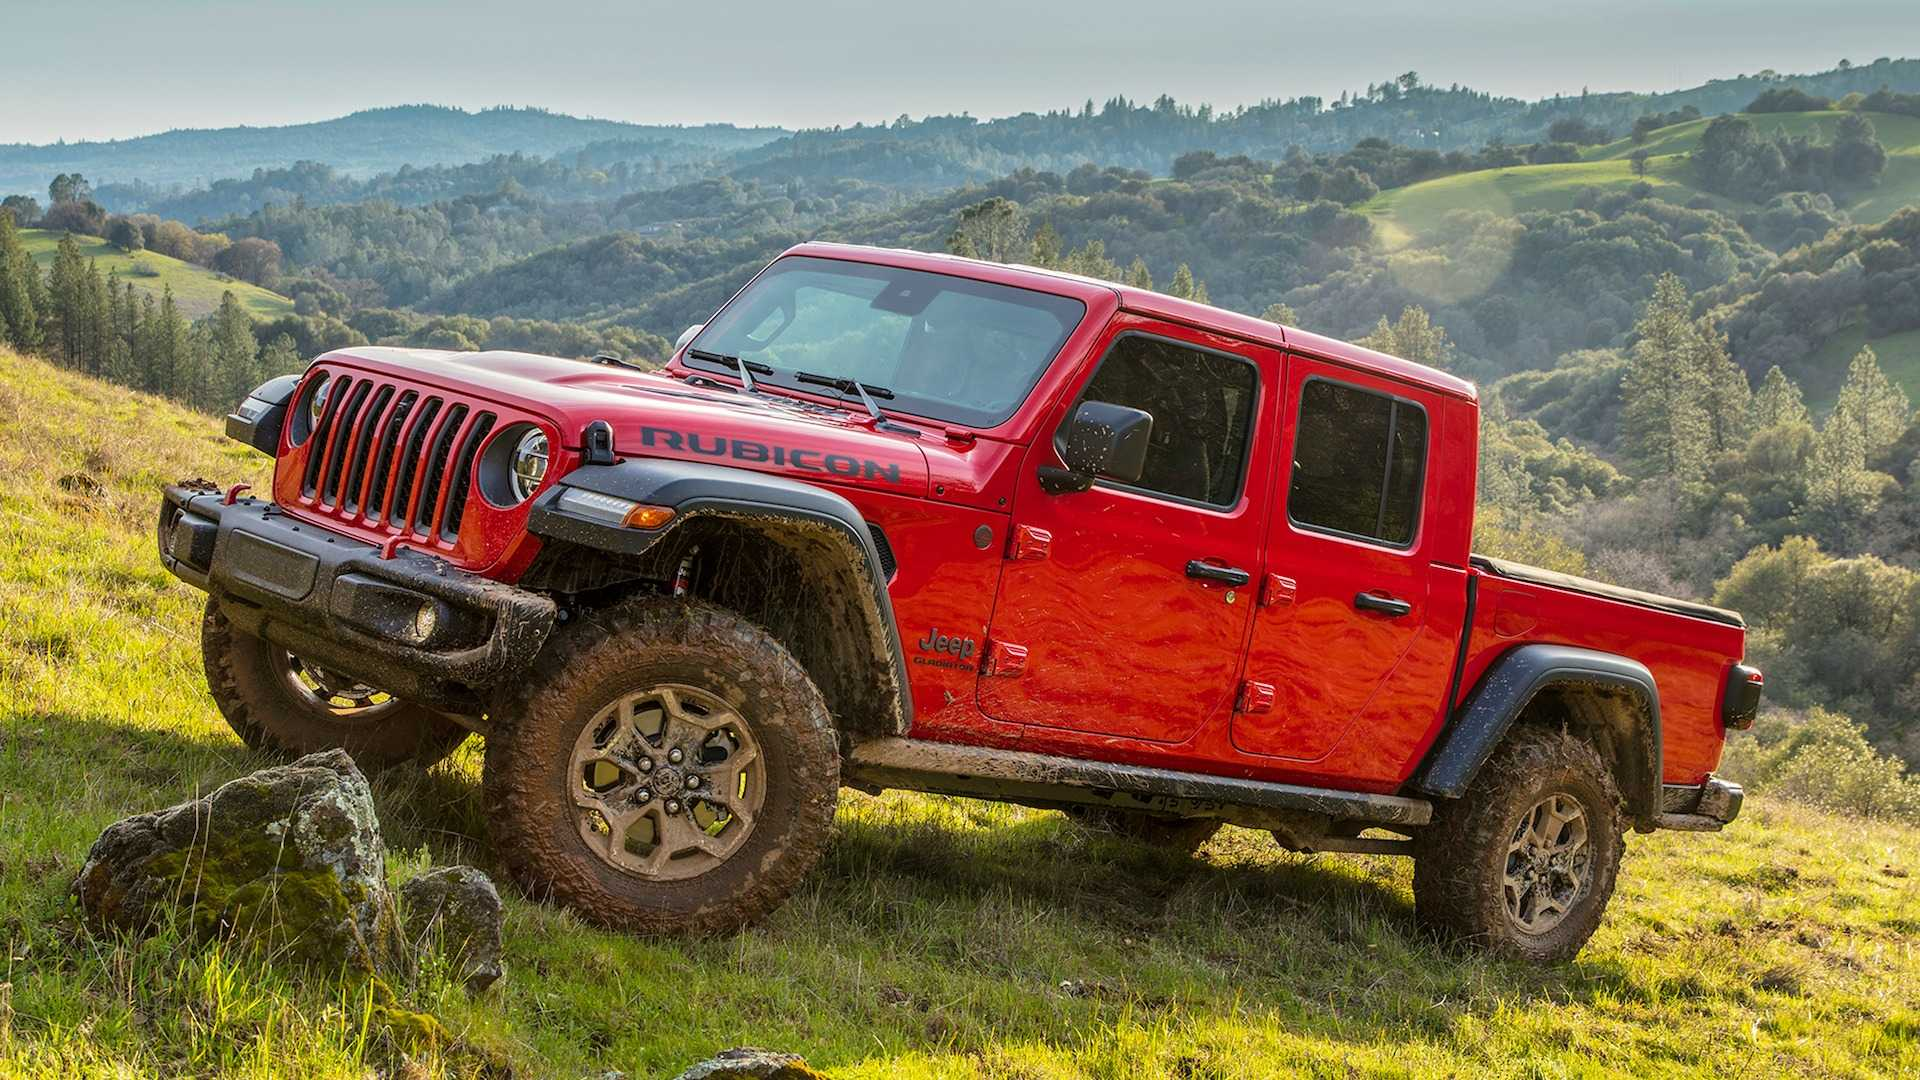 These Jeep Gladiator Photos Are Straight Up Off Road Porn 1920x1080